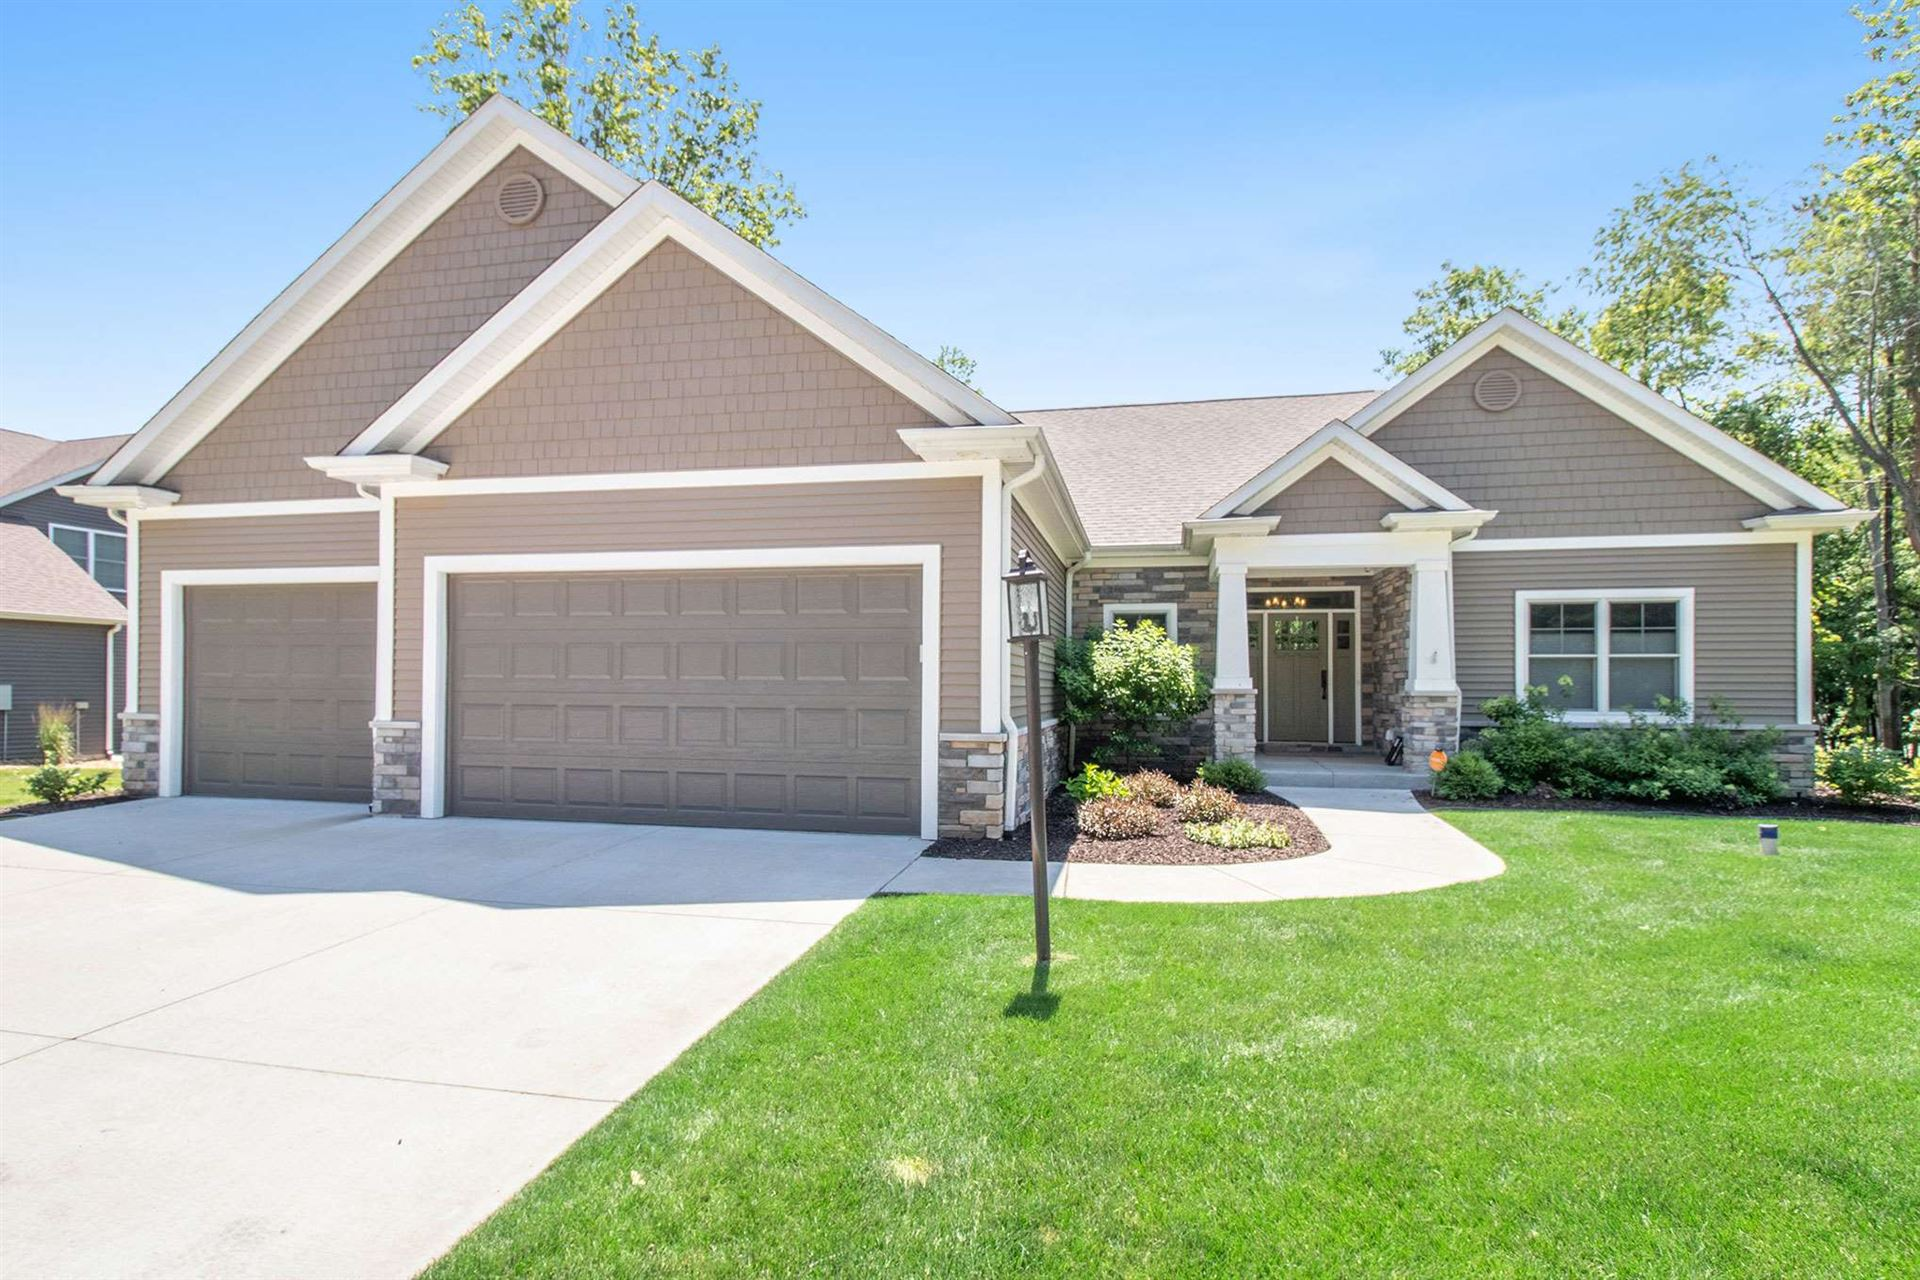 22254 Red Rock Way, South Bend, IN 46628 - #: 202025559